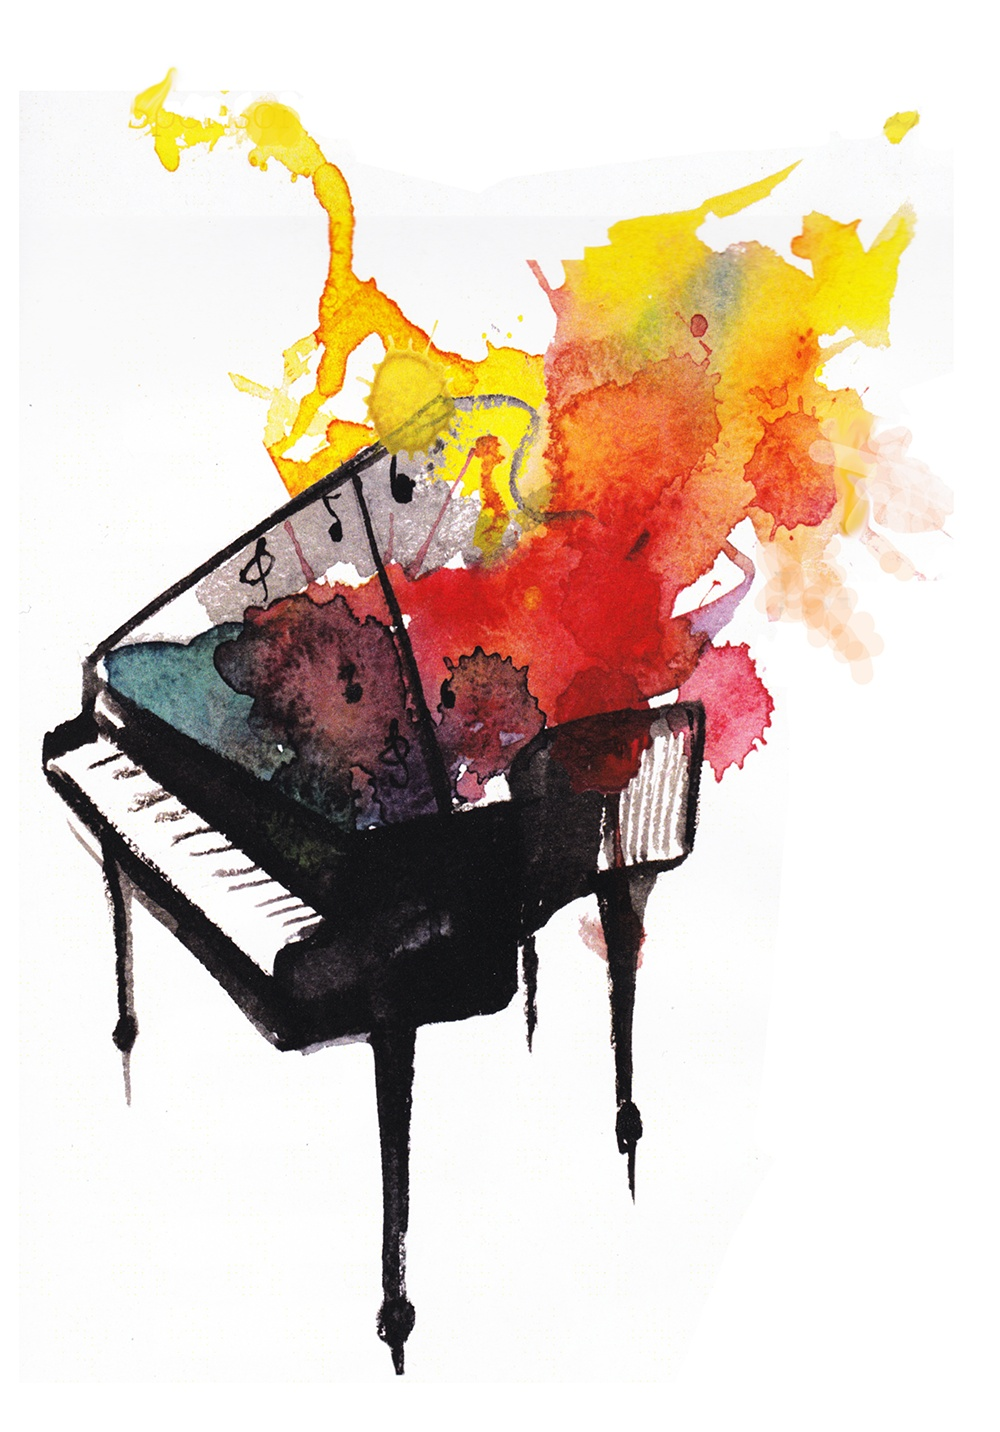 A watercolor piano with colorful 'sound' splashing from it